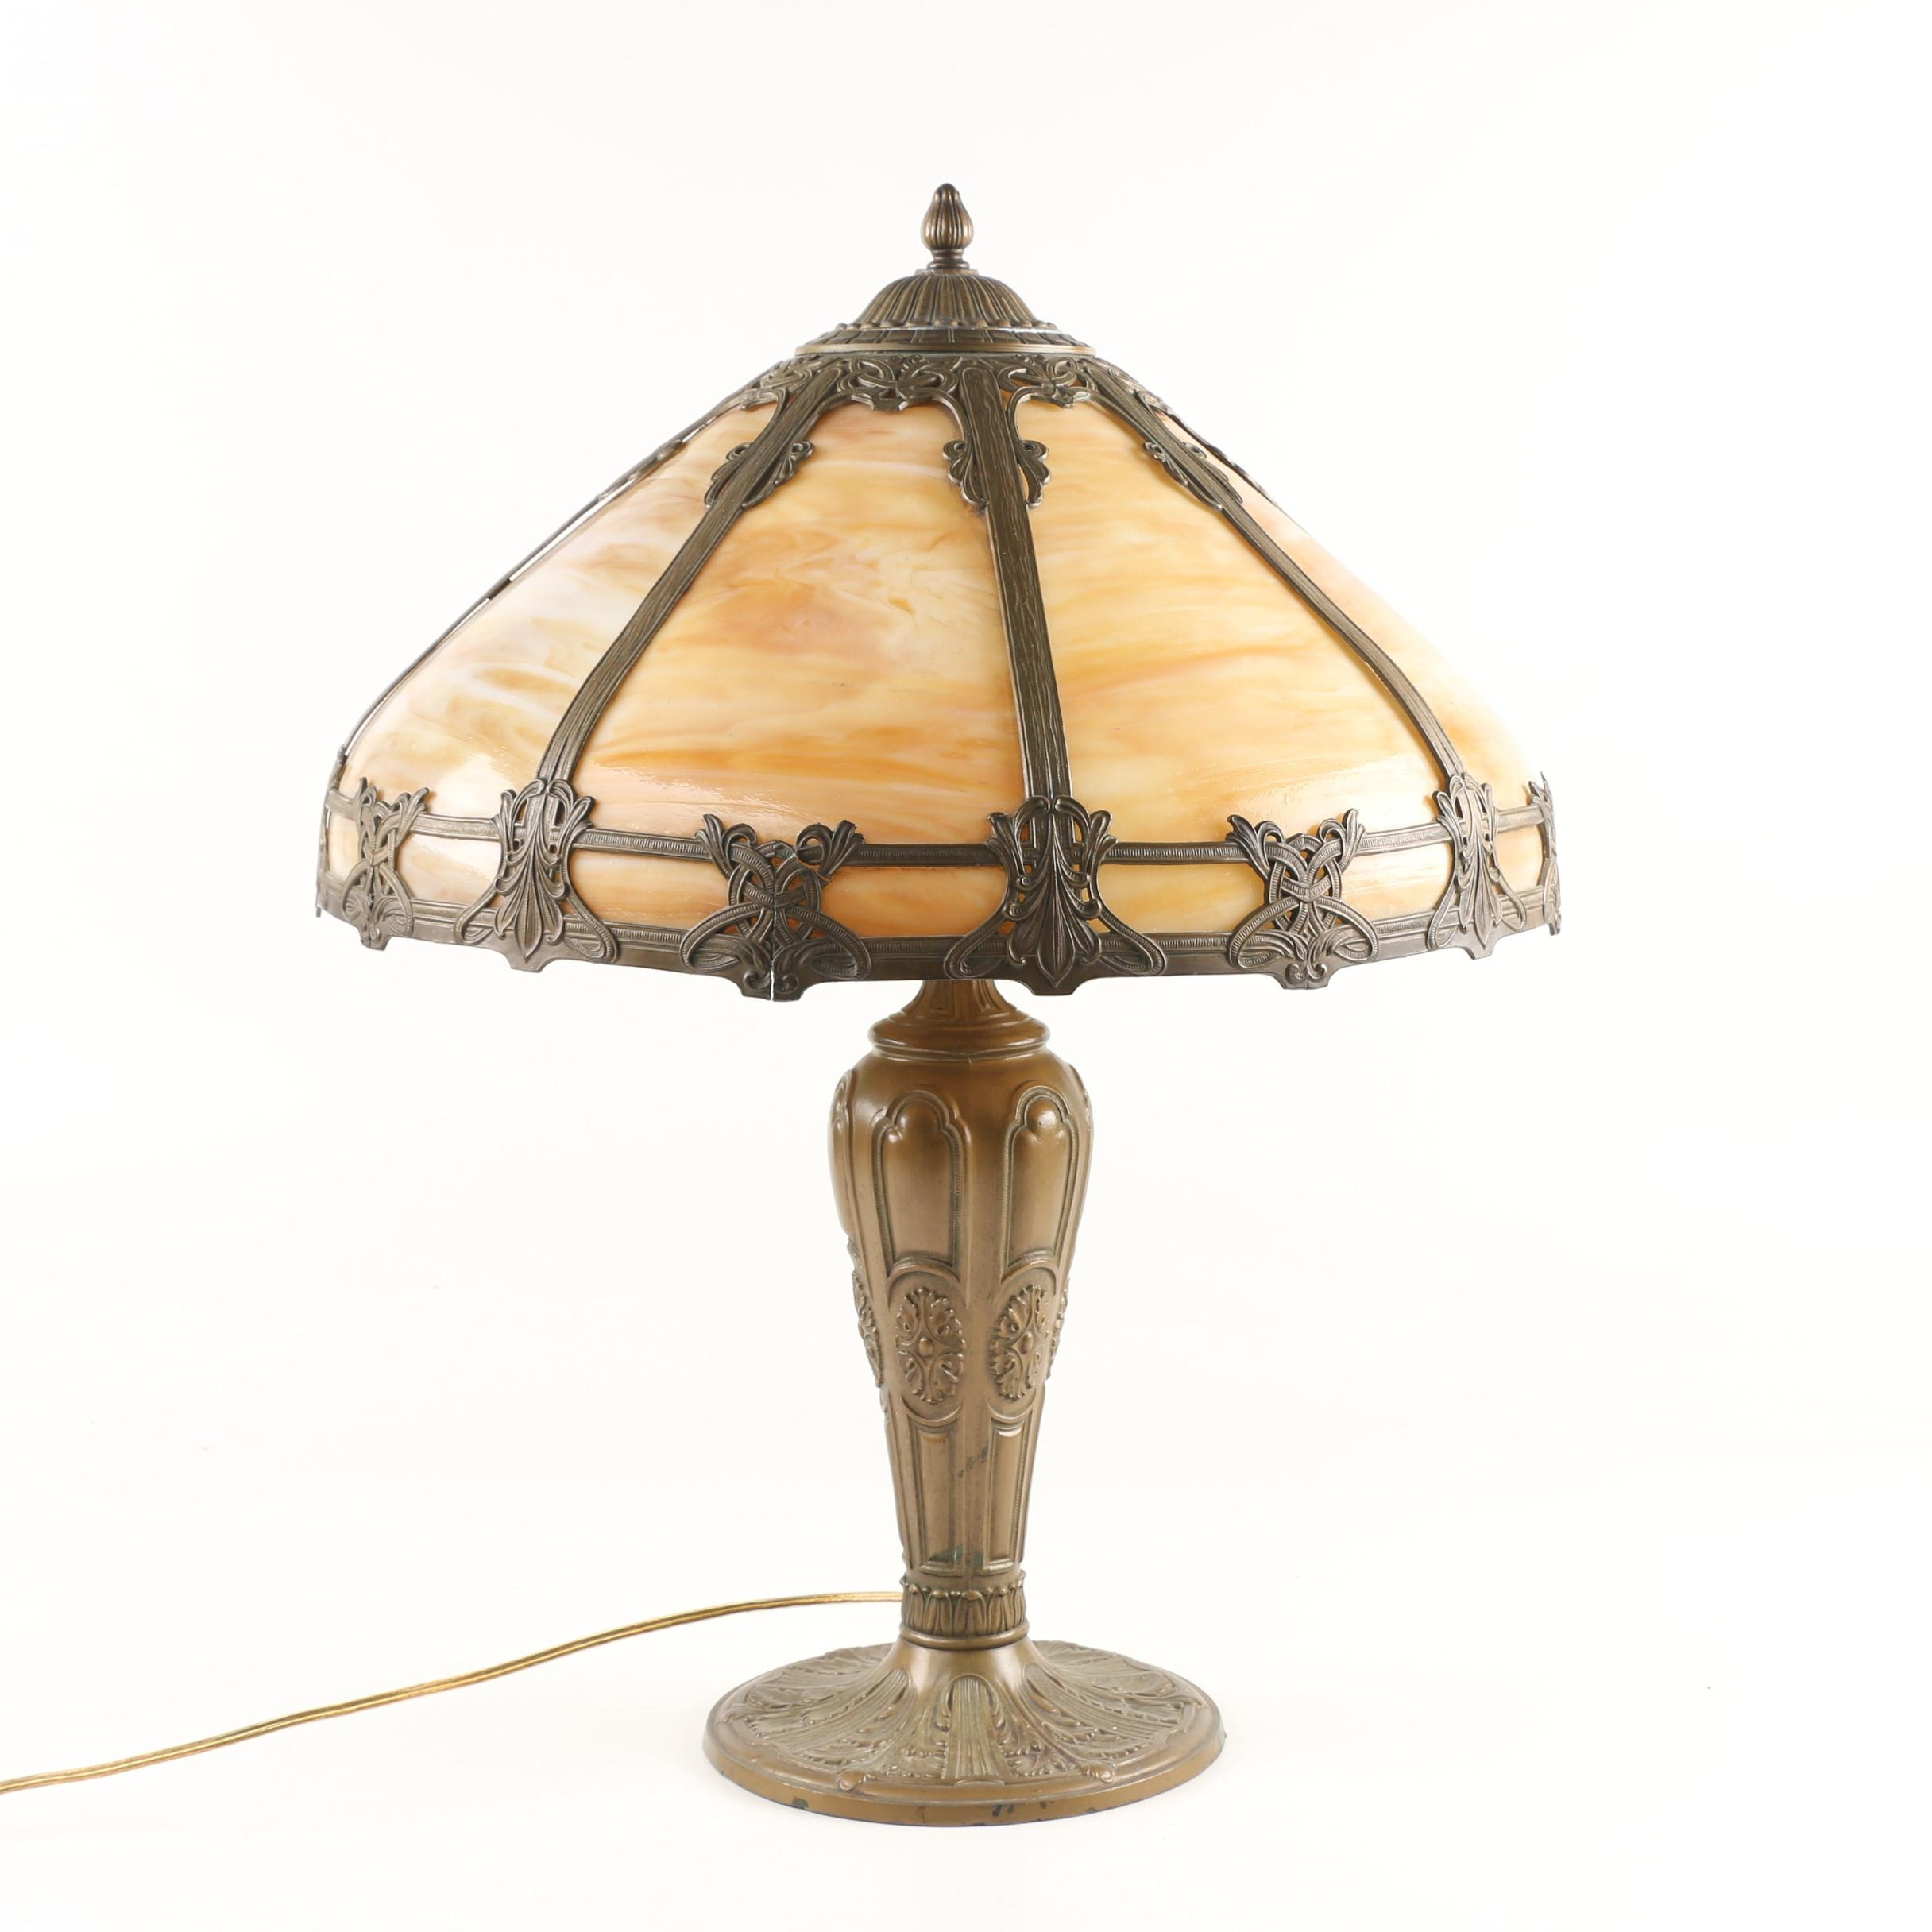 Painted Cast Metal Table Lamp with Slag Glass Shade